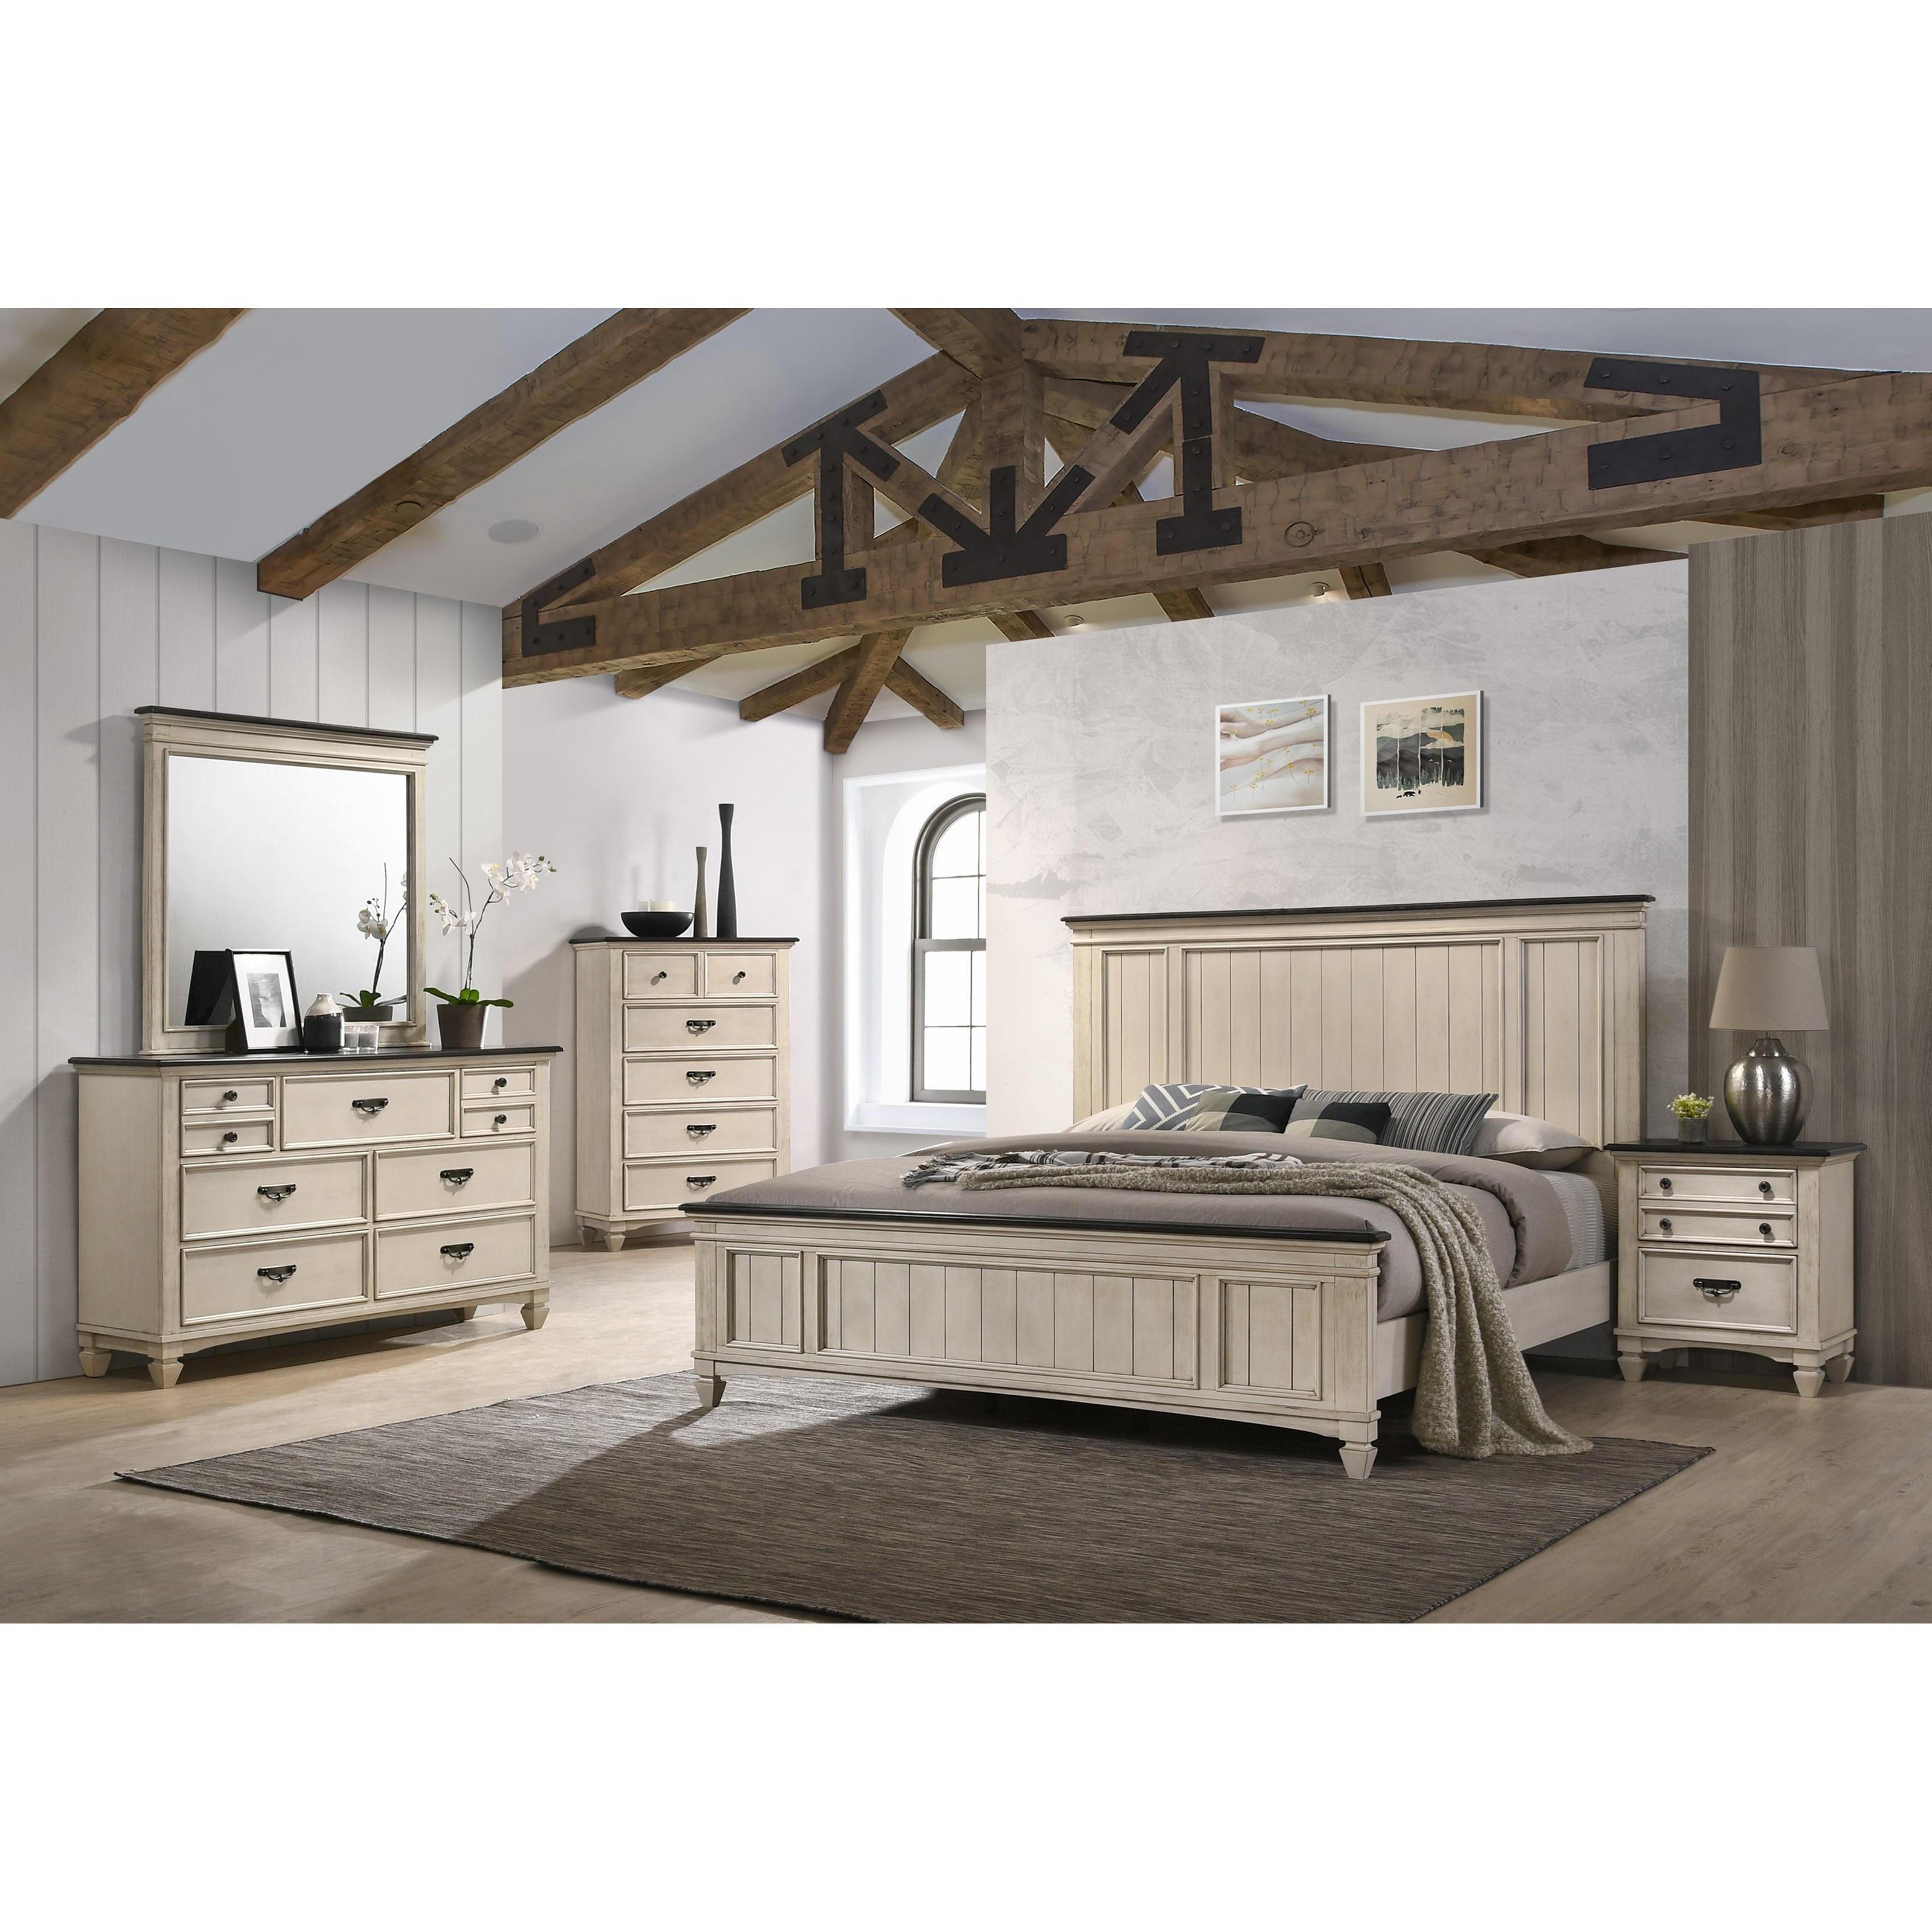 Sawyer King Bedroom Group by Crown Mark at Northeast Factory Direct